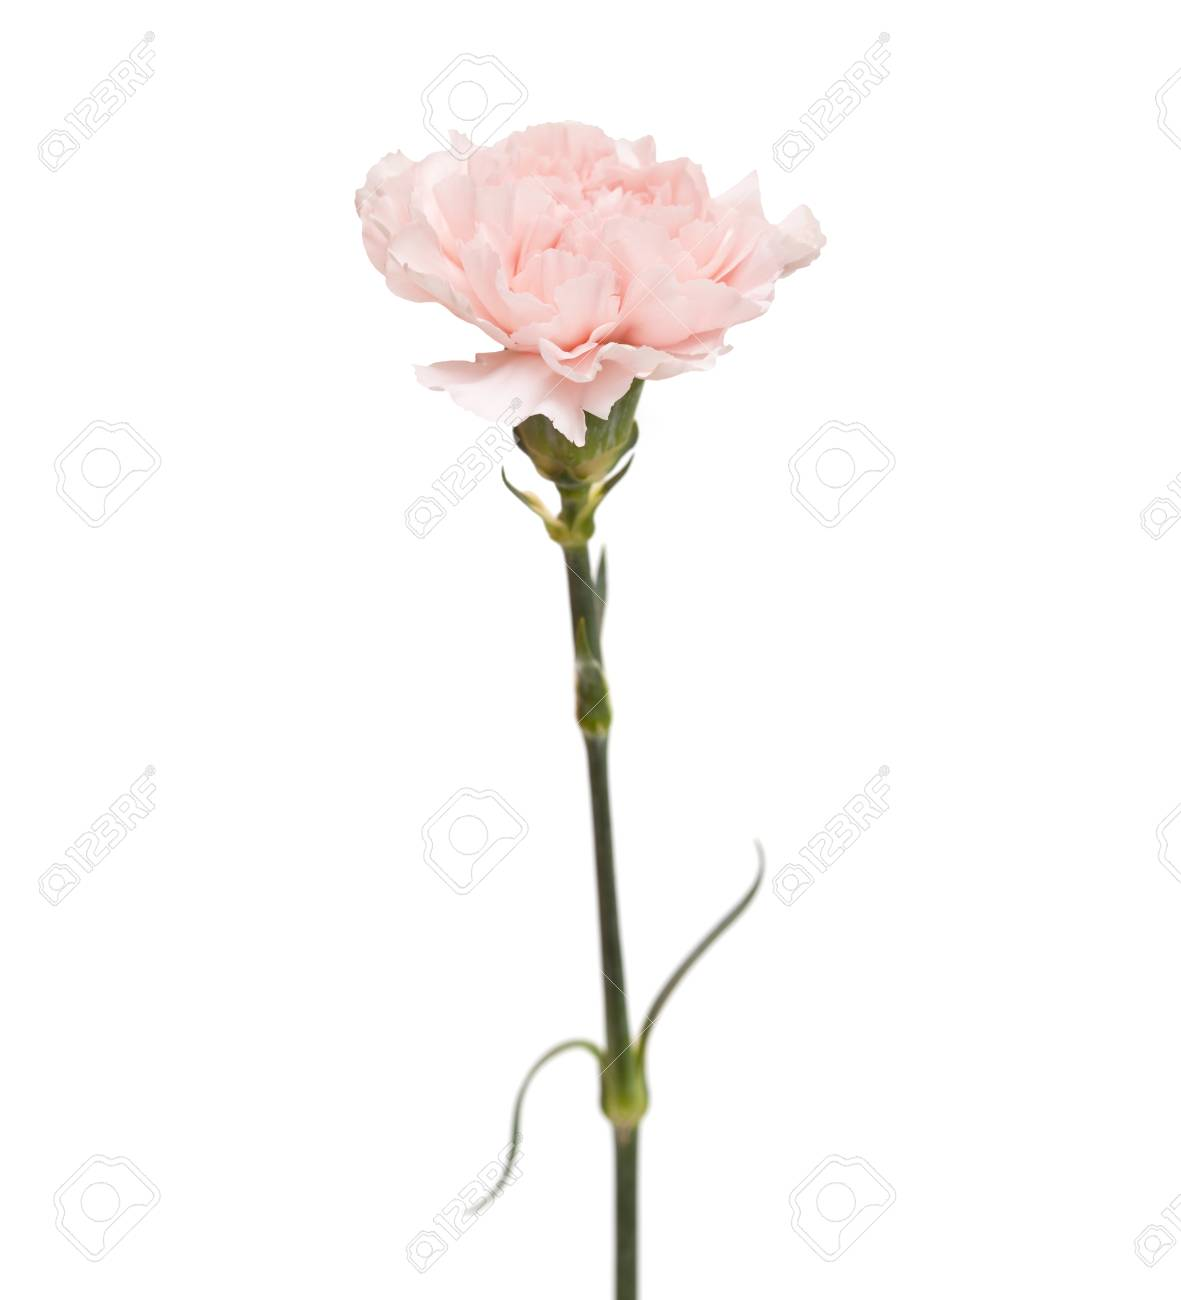 Gentle Pink Carnation Flower Isolated On White Background Stock